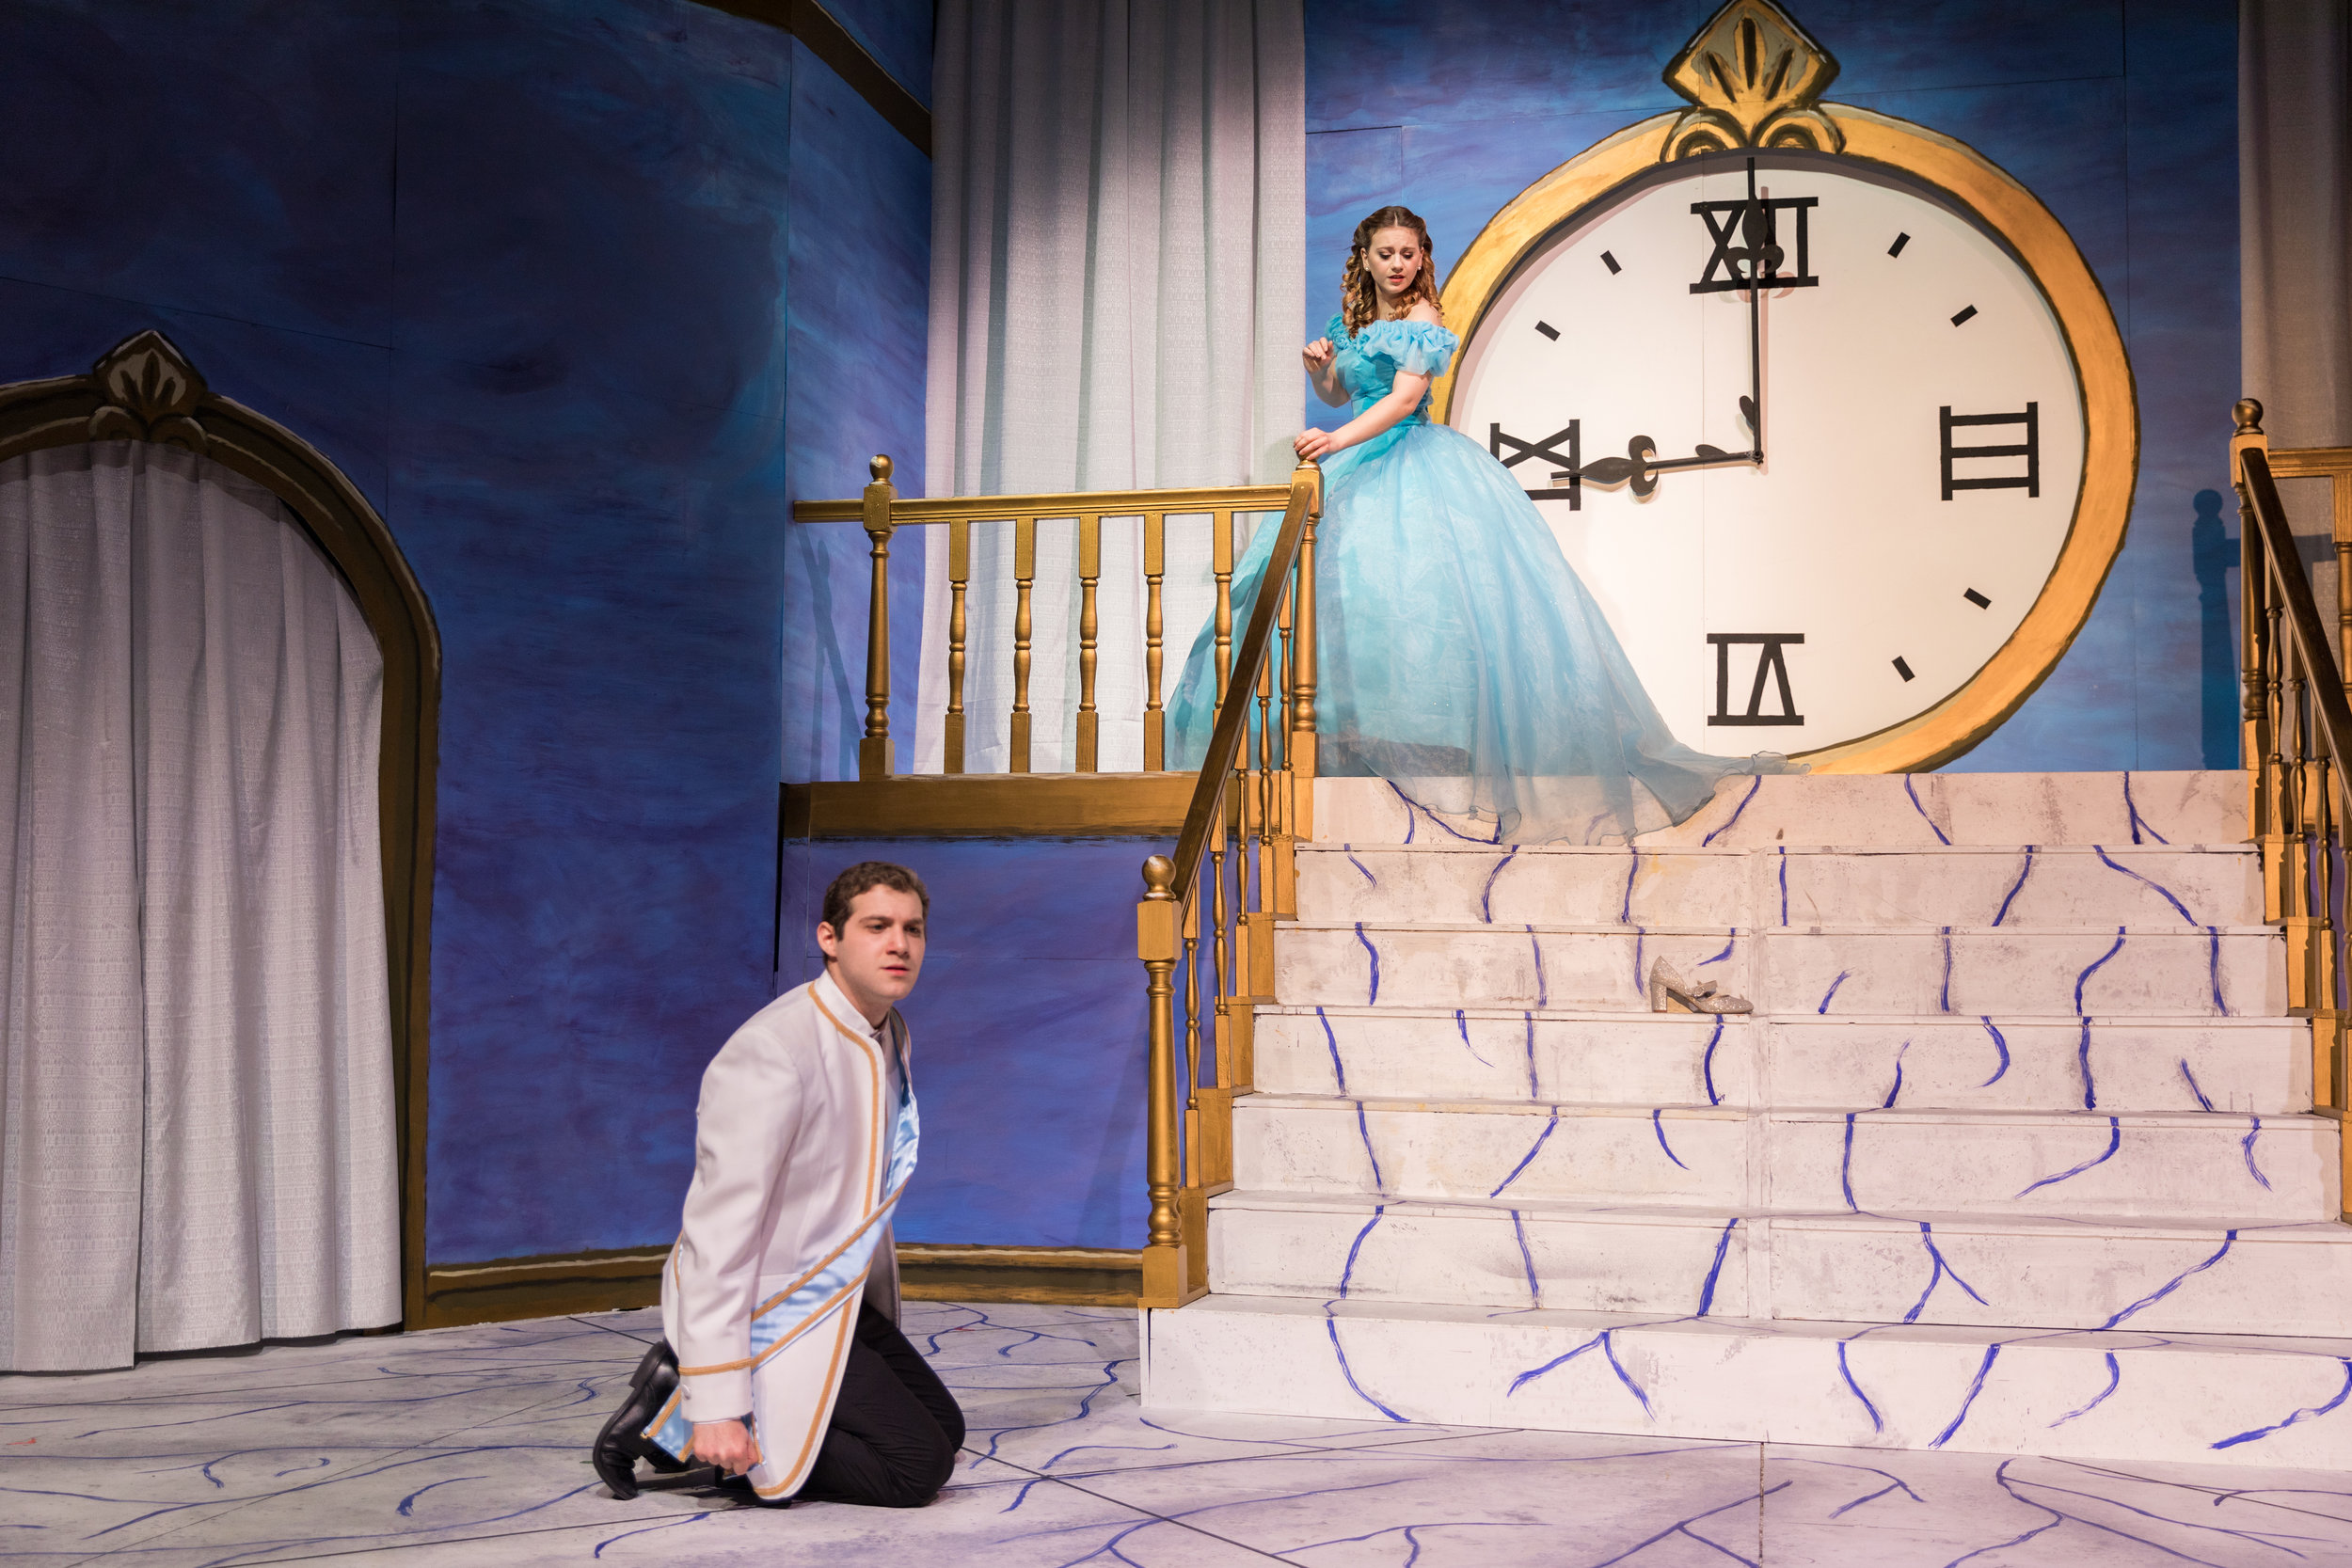 Act II: Cendrillon (Arianna Paz '19) reluctantly runs away from Le Prince Charmant (Samuel Rosner '20) at the Prince's Ball. Photo: Joshua Chiang.